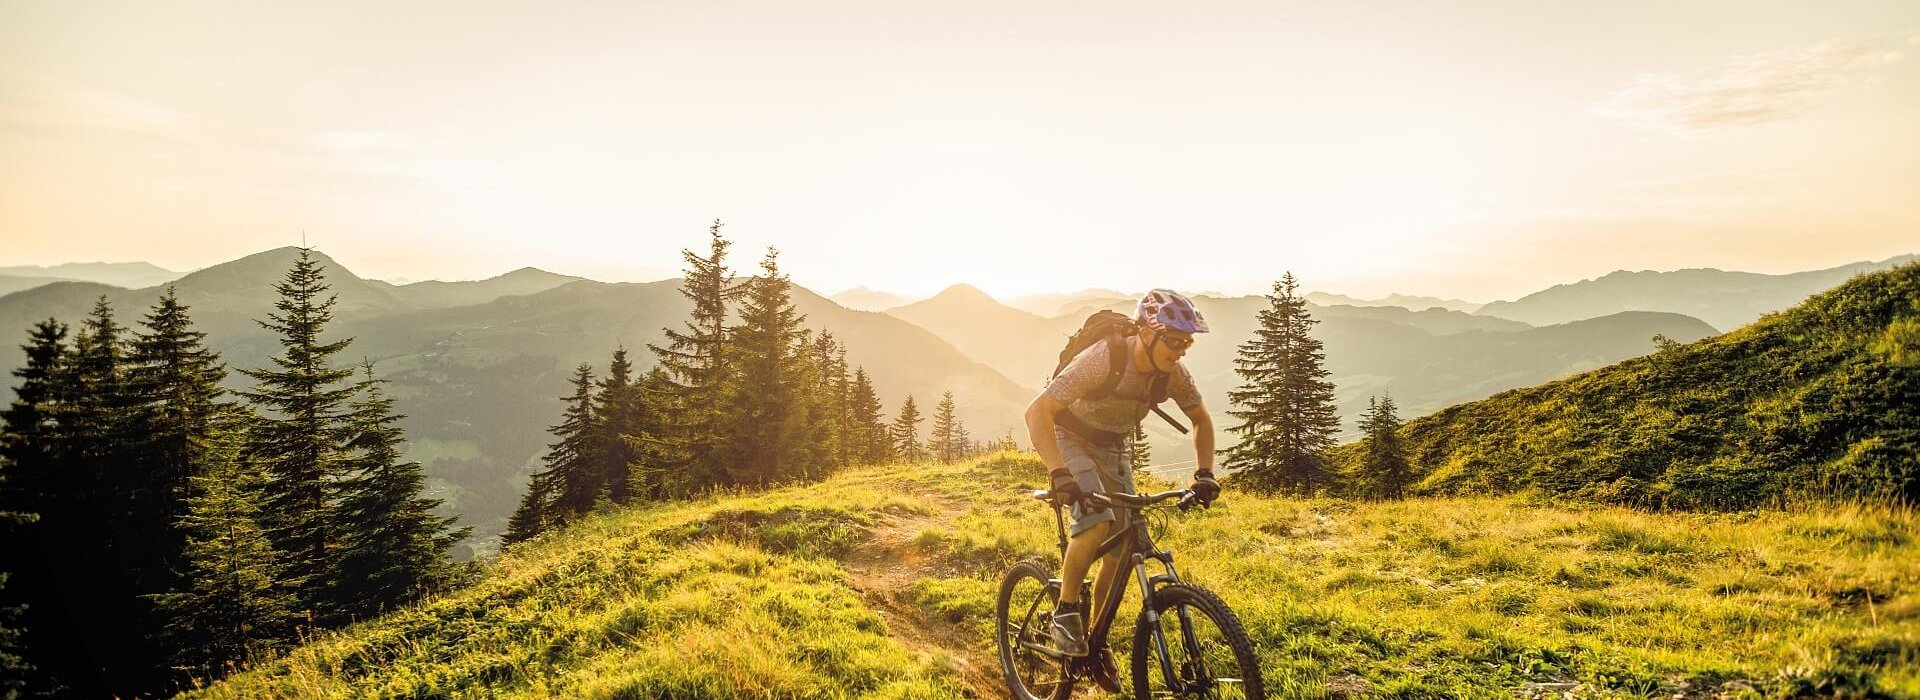 Mountainbiken in der Ferienregion Hohe Salve